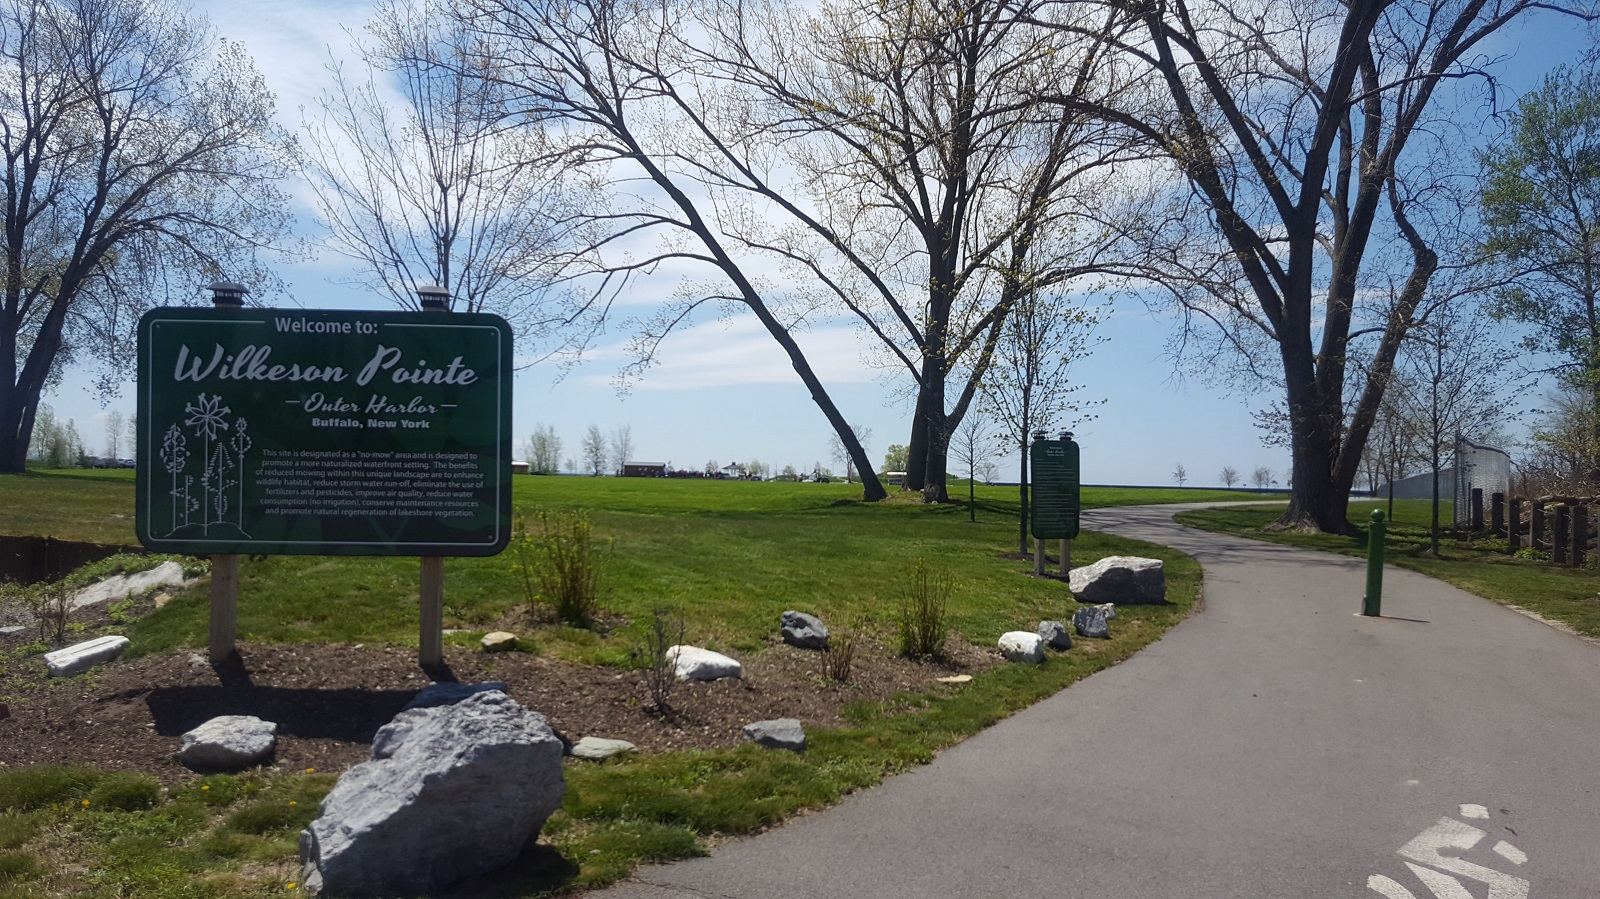 Wilkeson Pointe in Buffalo's Outer Harbor will be the setting for the Buffalo Brewers Festival.